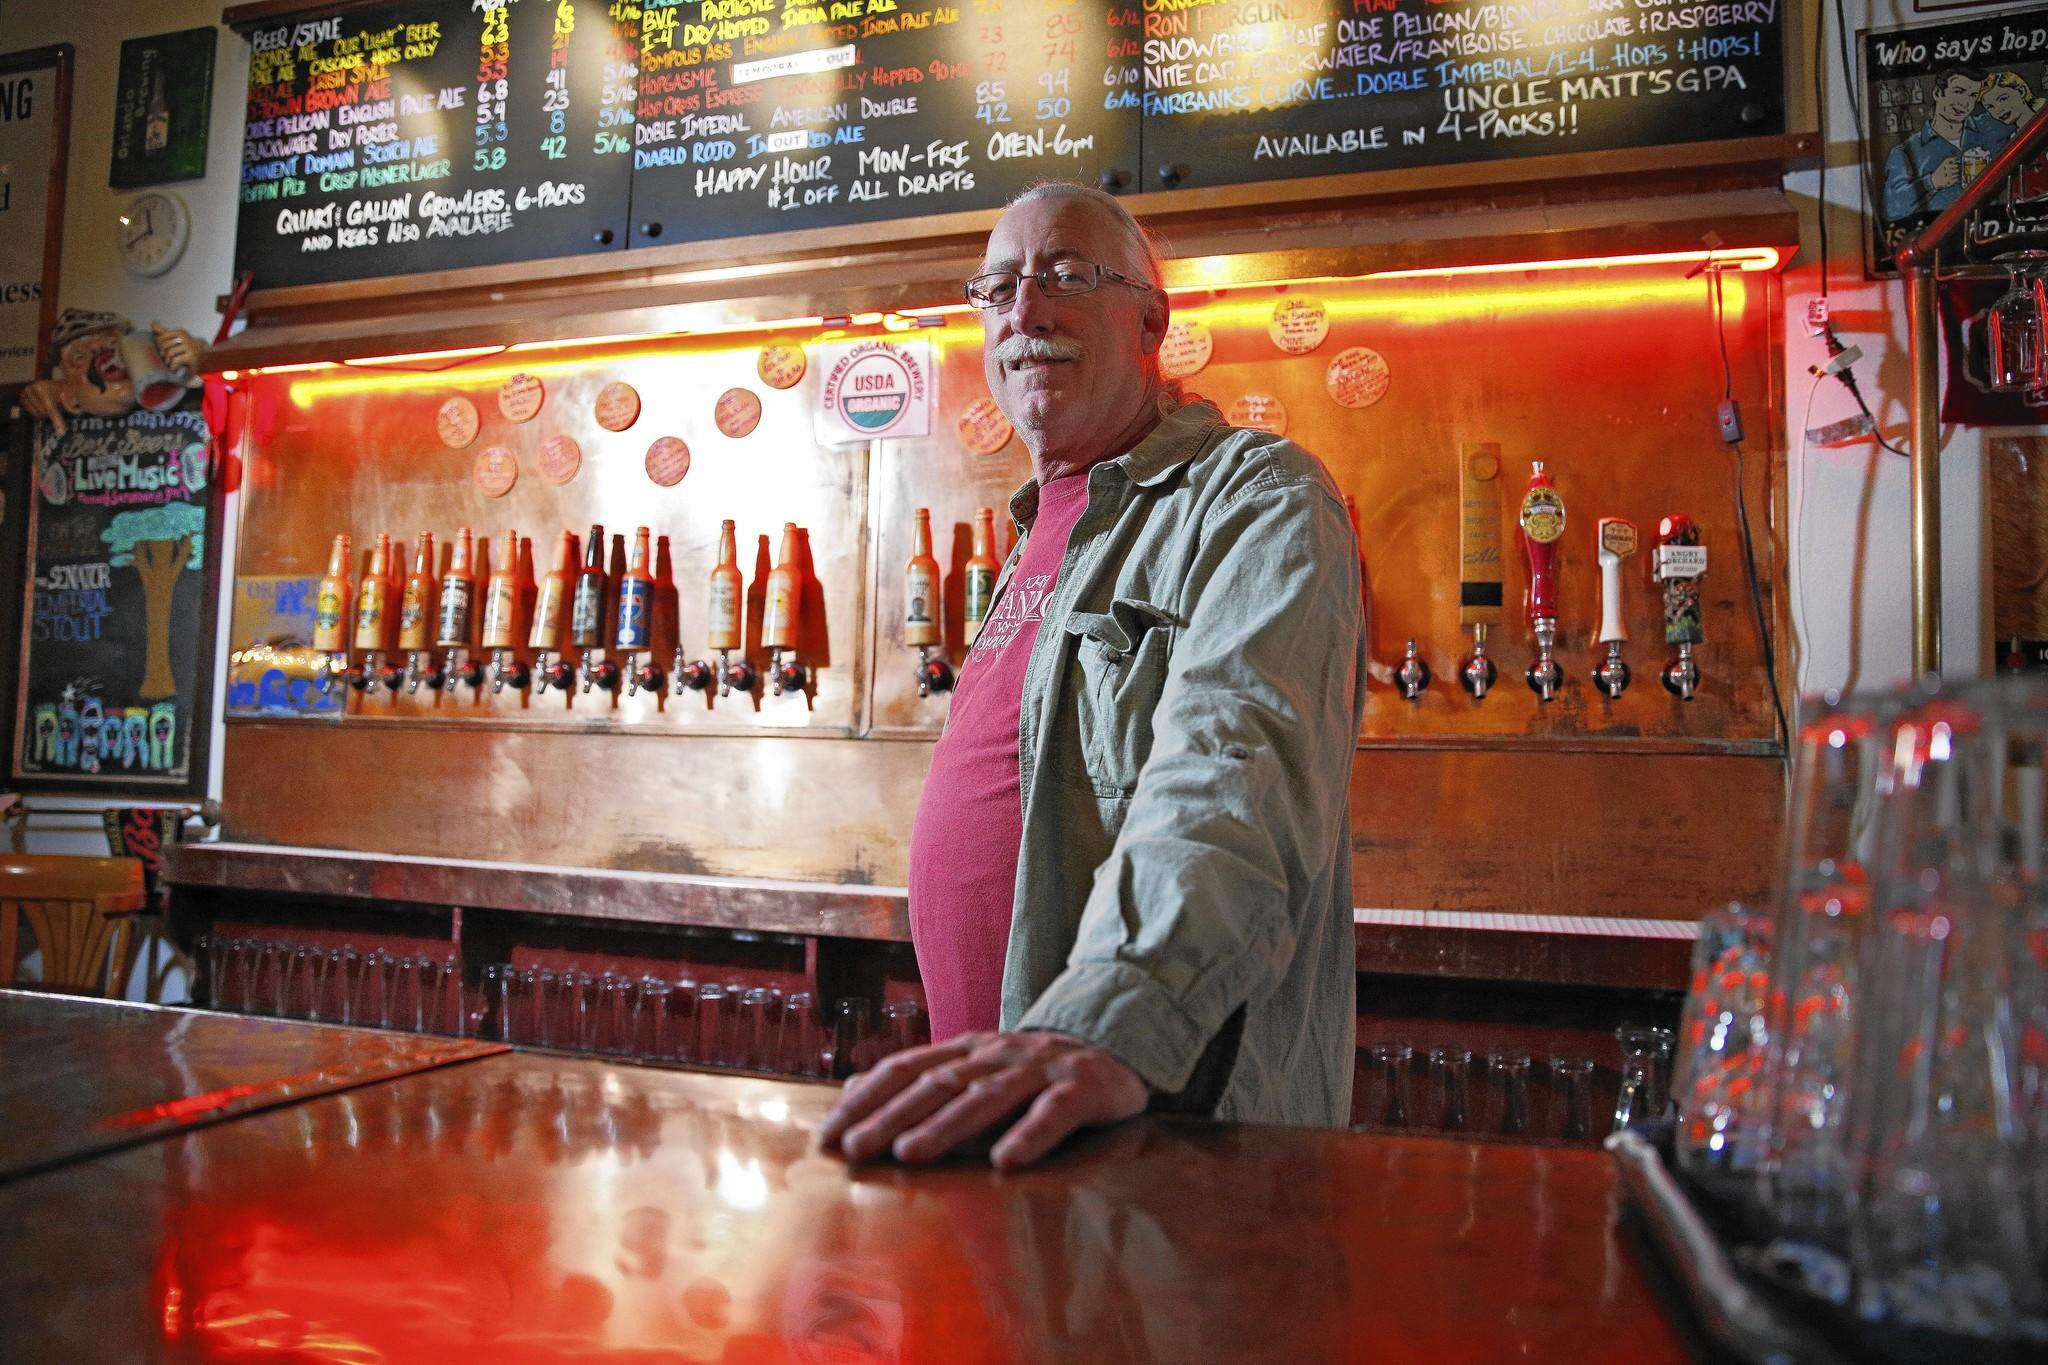 John Cheek, President of Orlando Brewing, is fighting against proposed legislation in Tallahassee that he believes benefits large brewers and distributors at the expense of microbreweries. Orlando Brewing's Brewery and Taproom in Orlando, Fla. Friday, March 28, 2014.